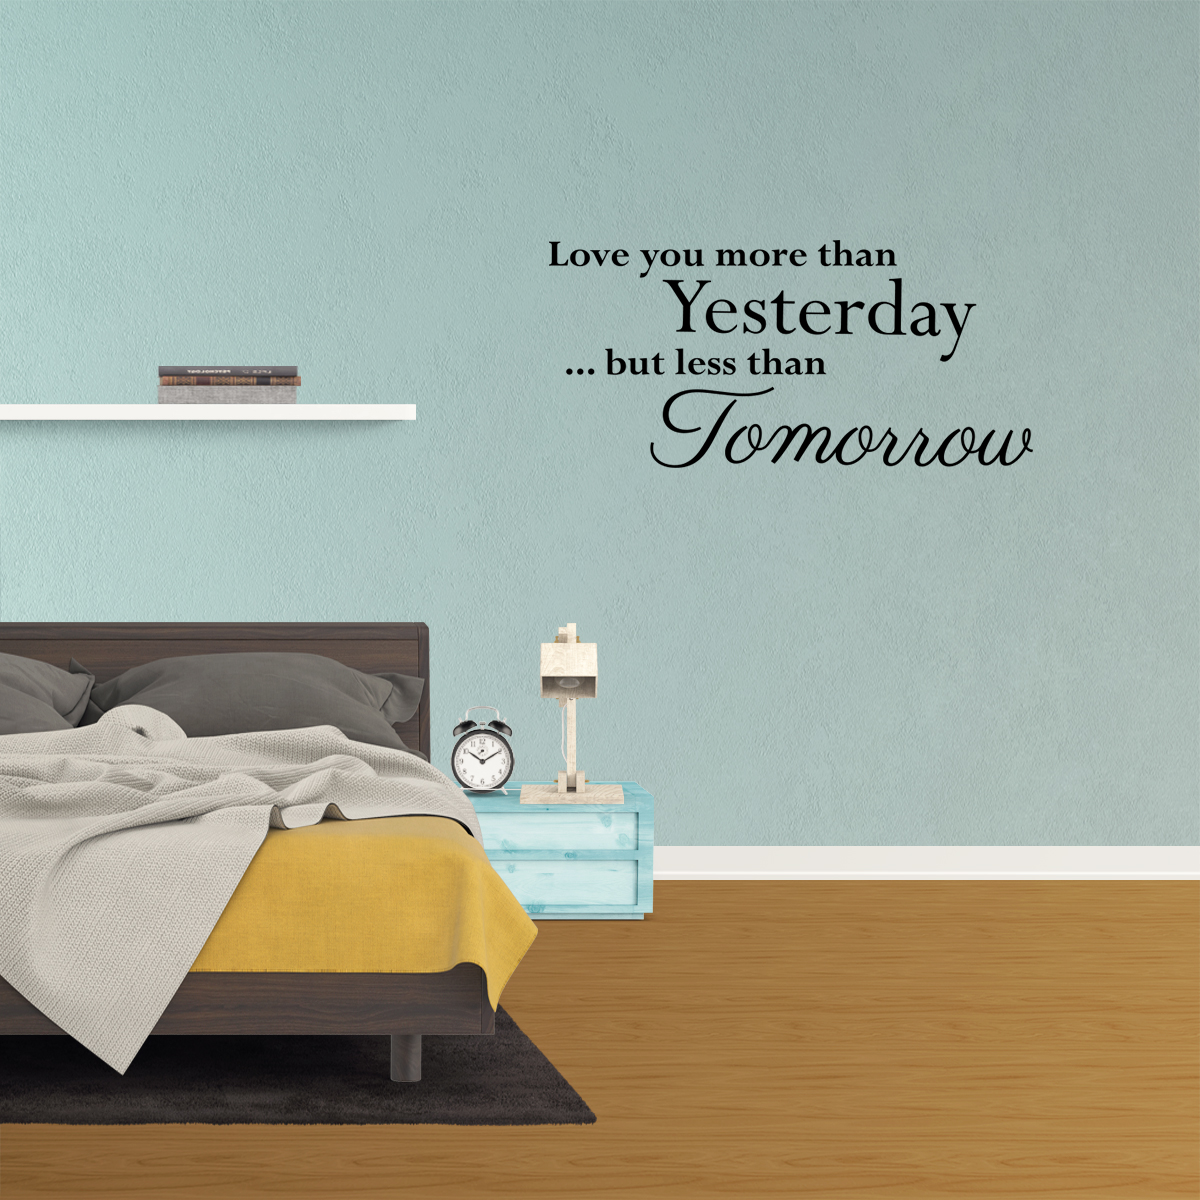 Wall Decal Quote Love You More Than Yesterday But Less Than Tomorrow Art Sticker Home Decor Xp16 Walmart Com Walmart Com